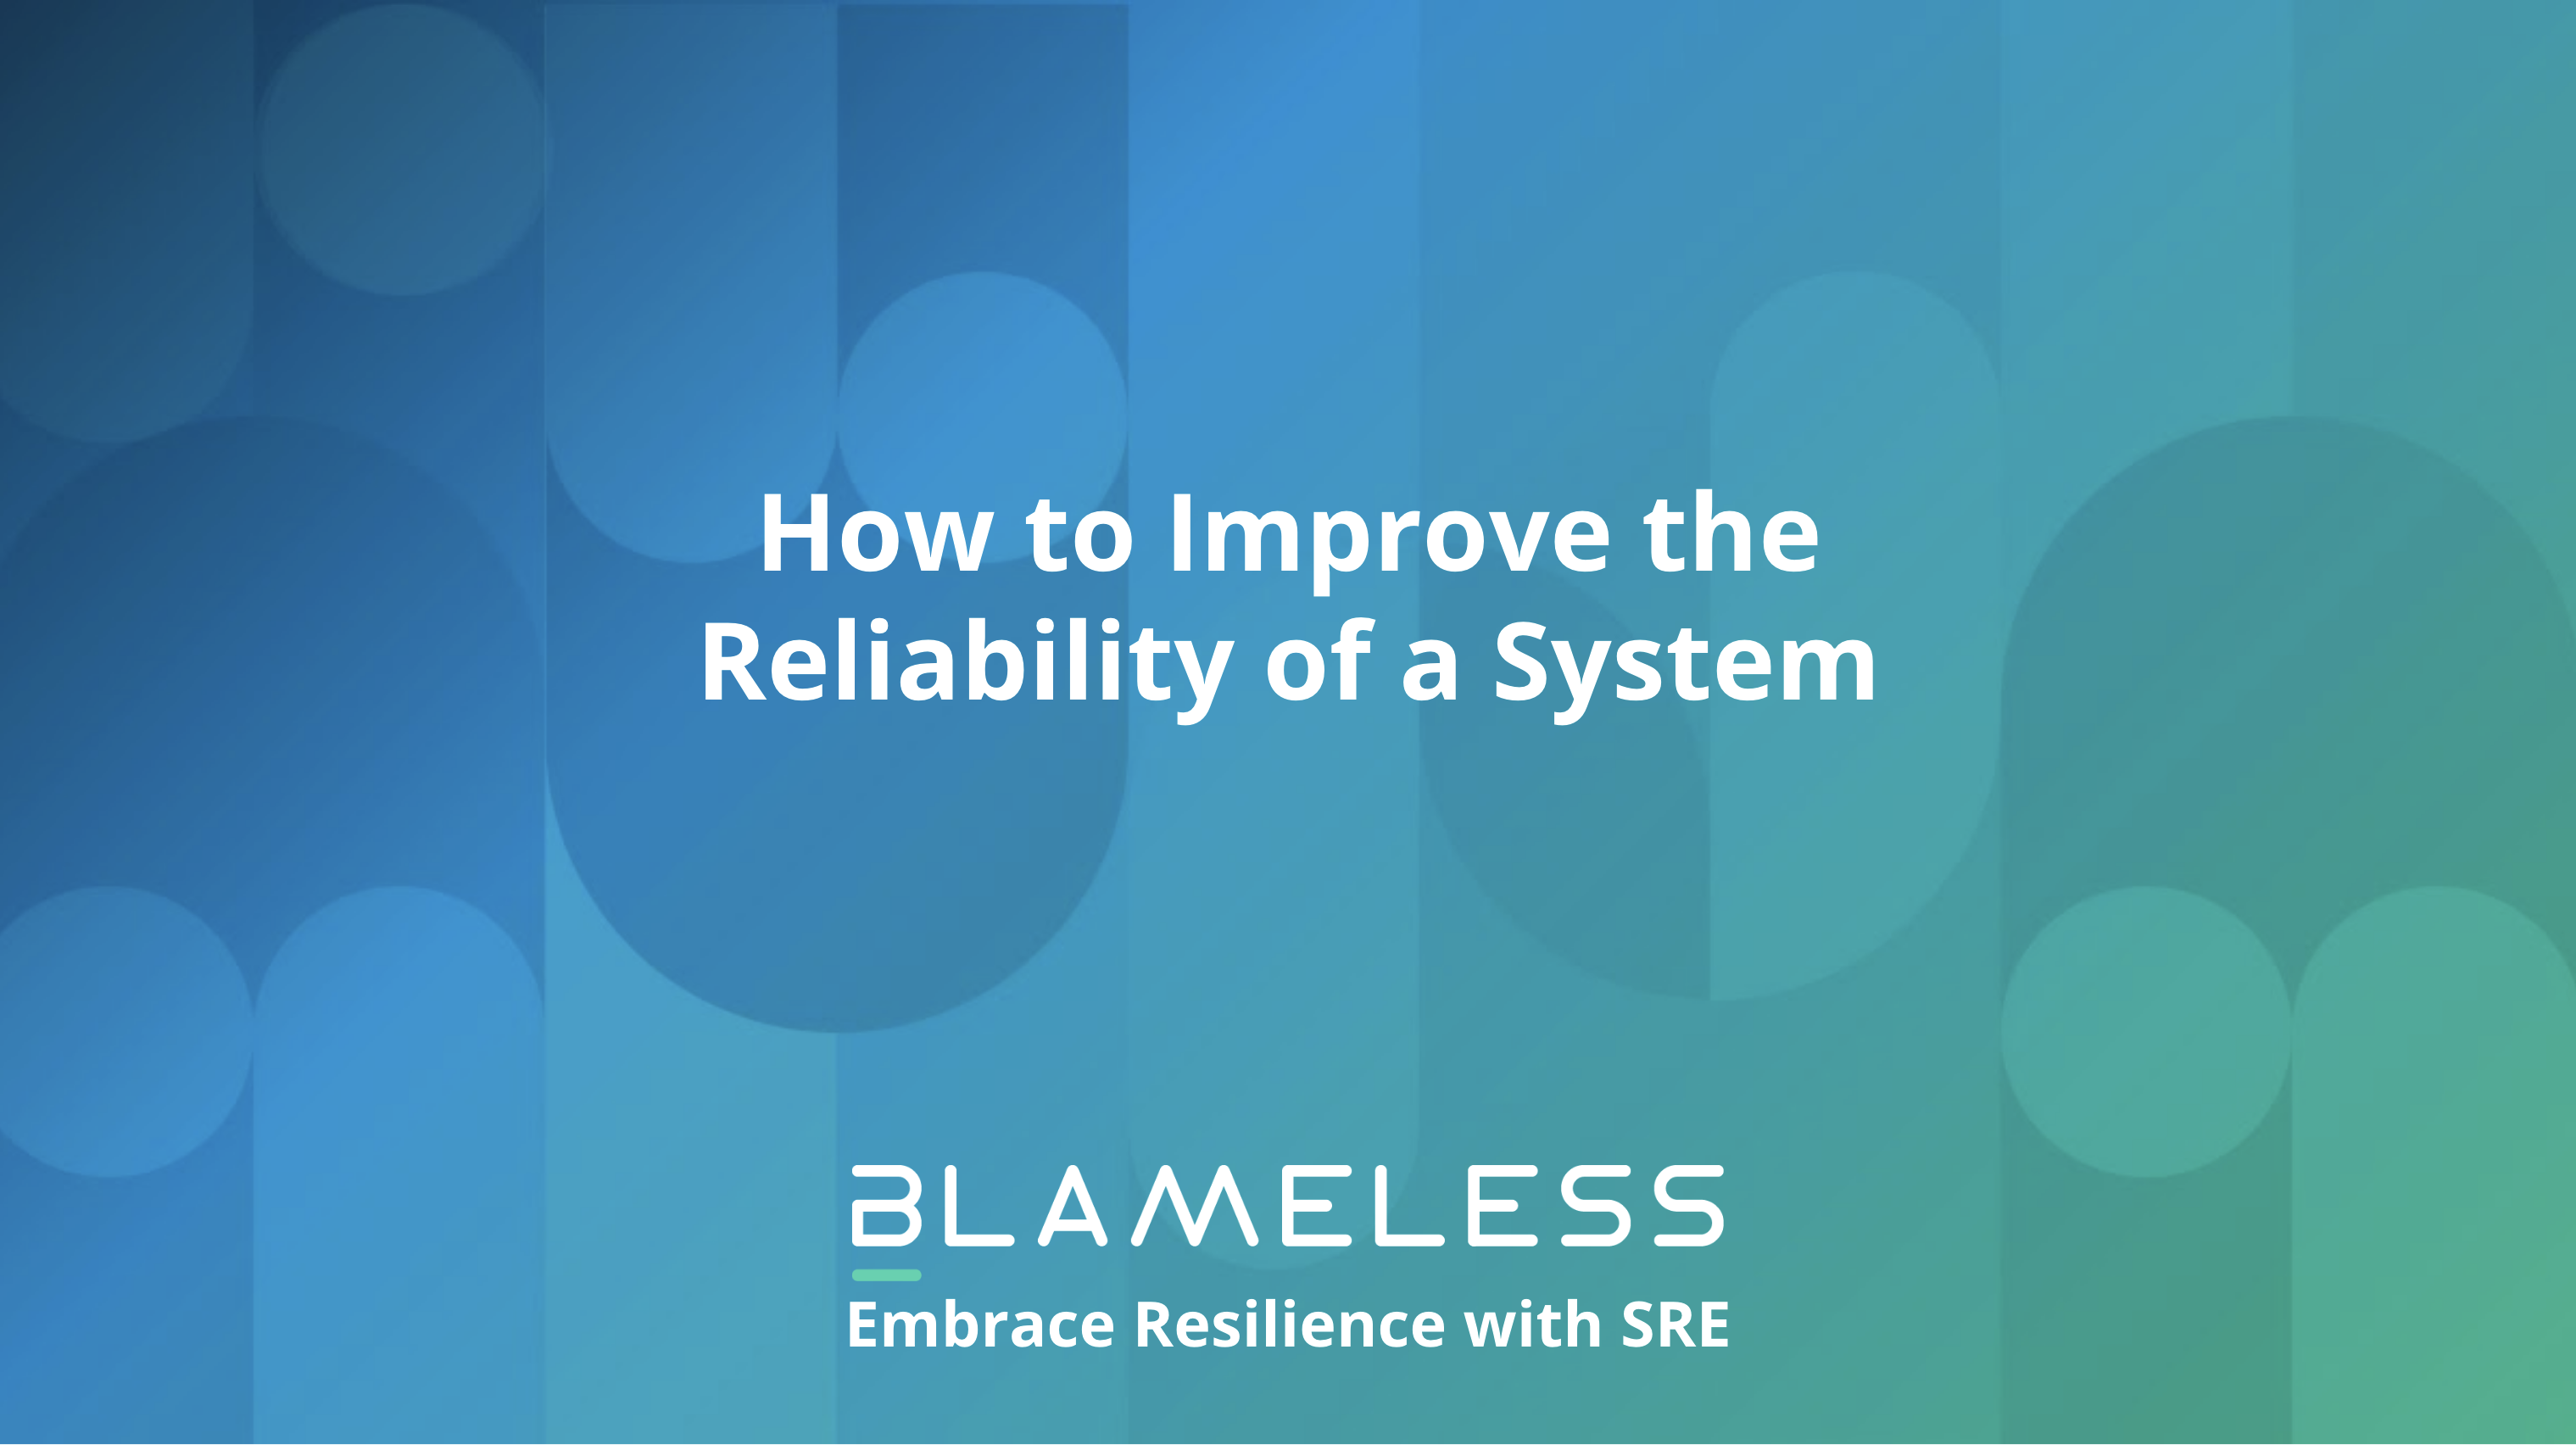 How to Improve the Reliability of a System